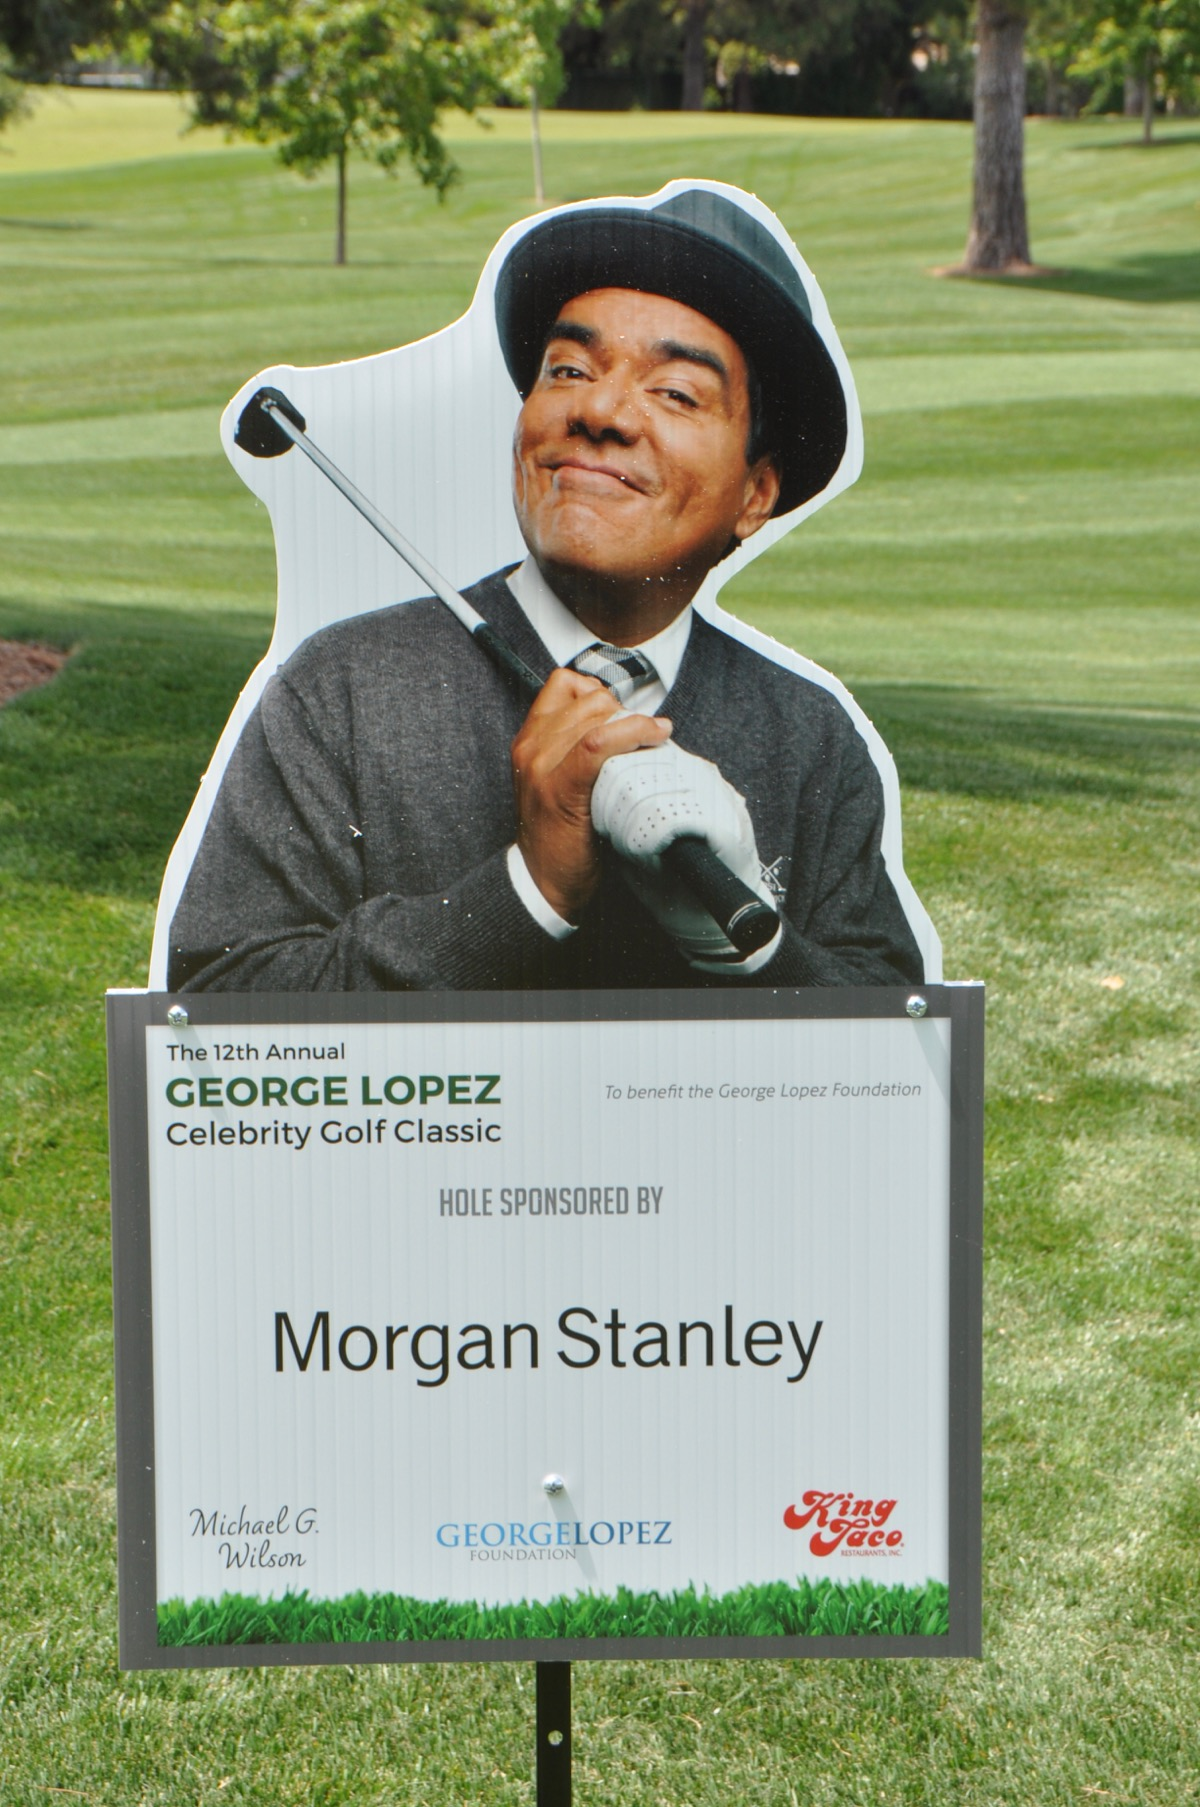 12th Annual George Lopez Celebrity Golf Classic Photos - 99.jpg